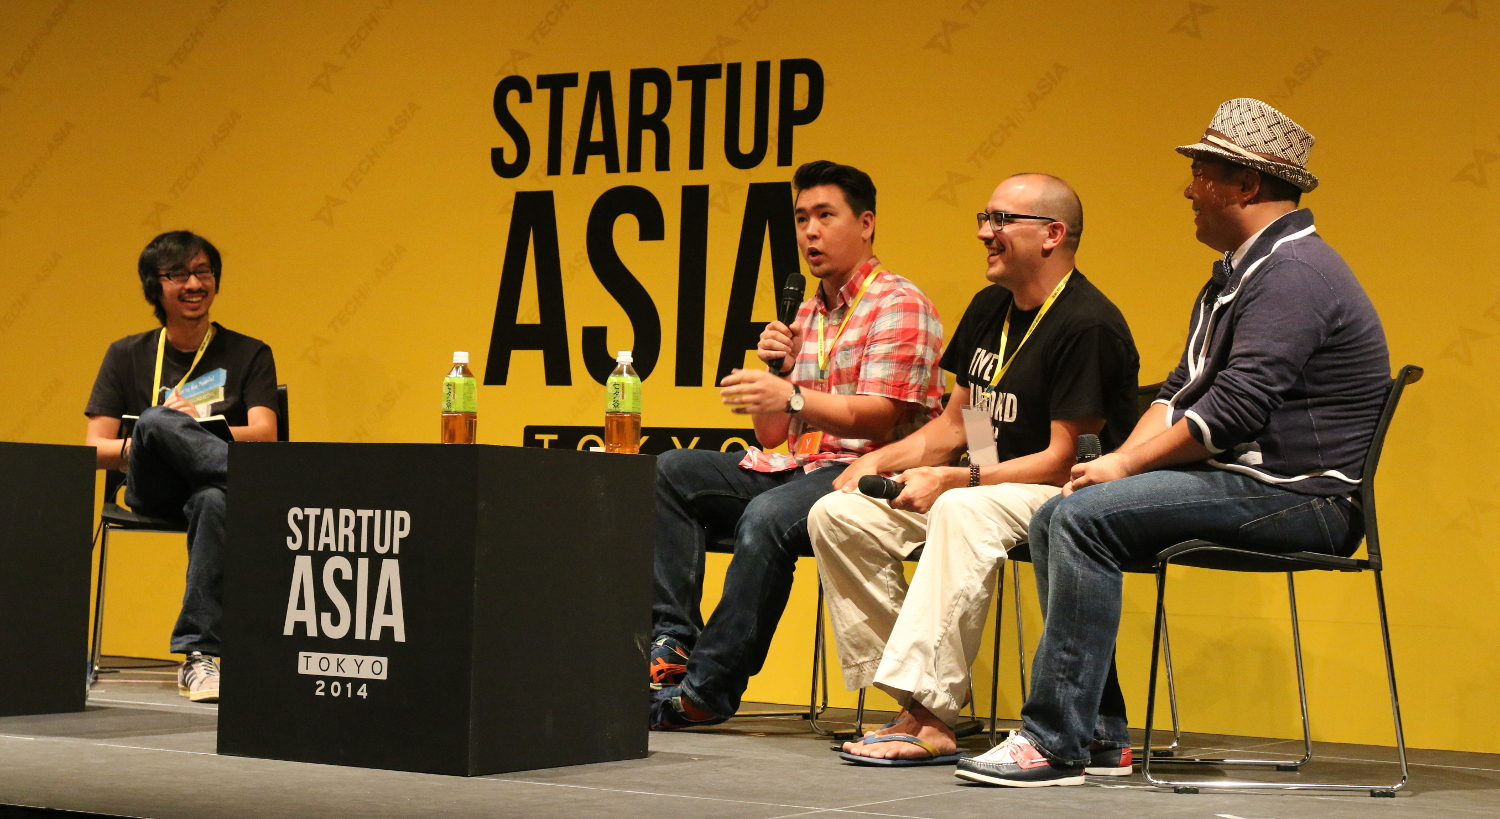 10 ways Japanese entrepreneurs are different from Silicon Valley entrepreneurs (#StartupAsia)